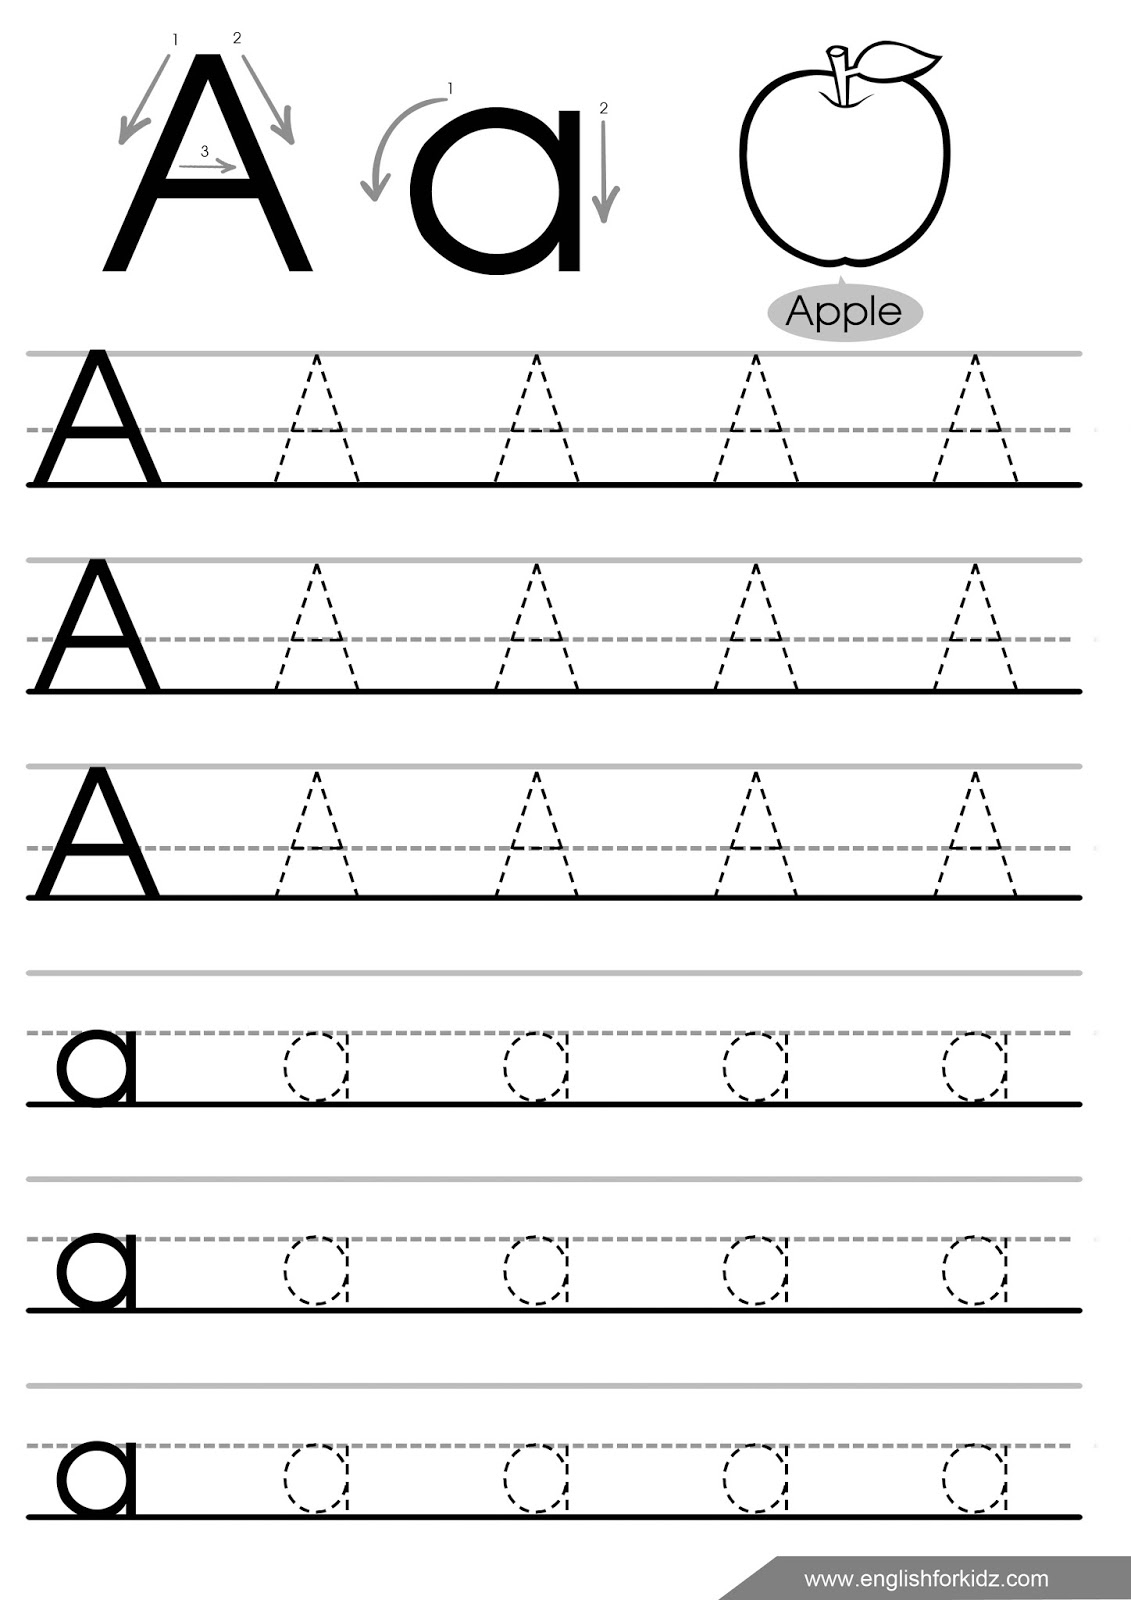 Letter Tracing Worksheets (Letters A - J) within Alphabet Tracing Sheet Free